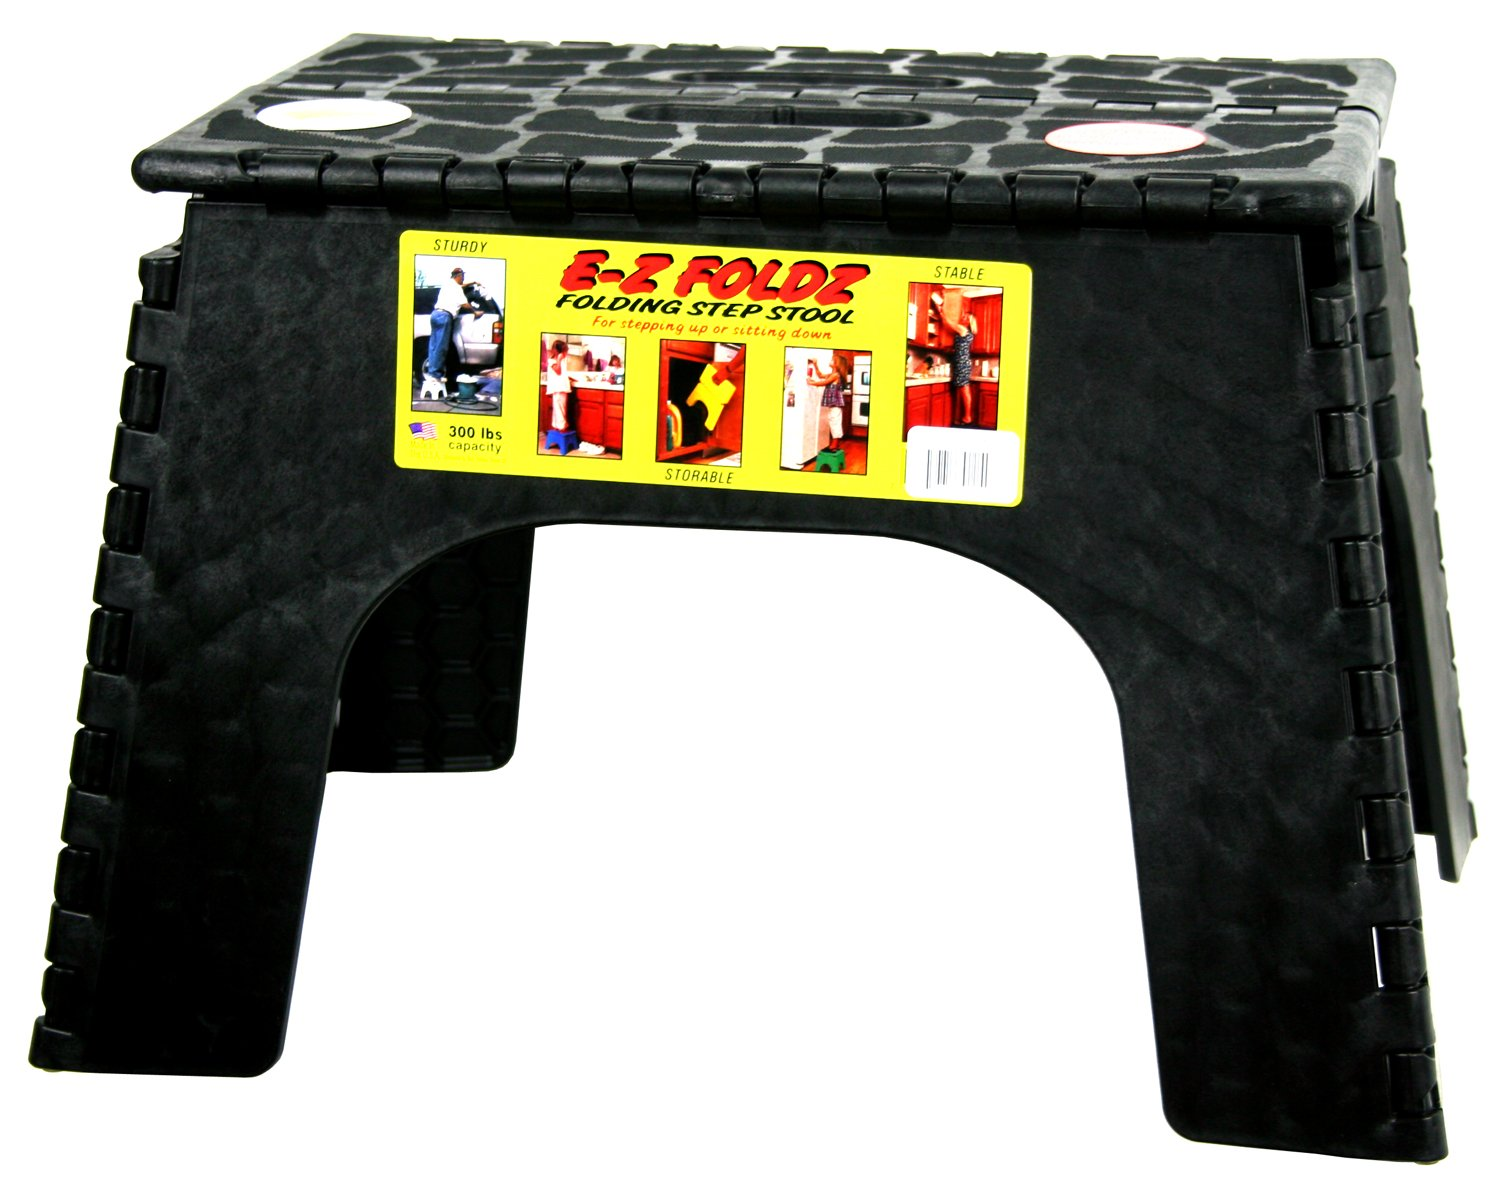 Amazon.com B u0026 R Plastics 103-6BK E-Z Foldz Black 12  Step Stool Automotive  sc 1 st  Amazon.com : folding step up stool - islam-shia.org